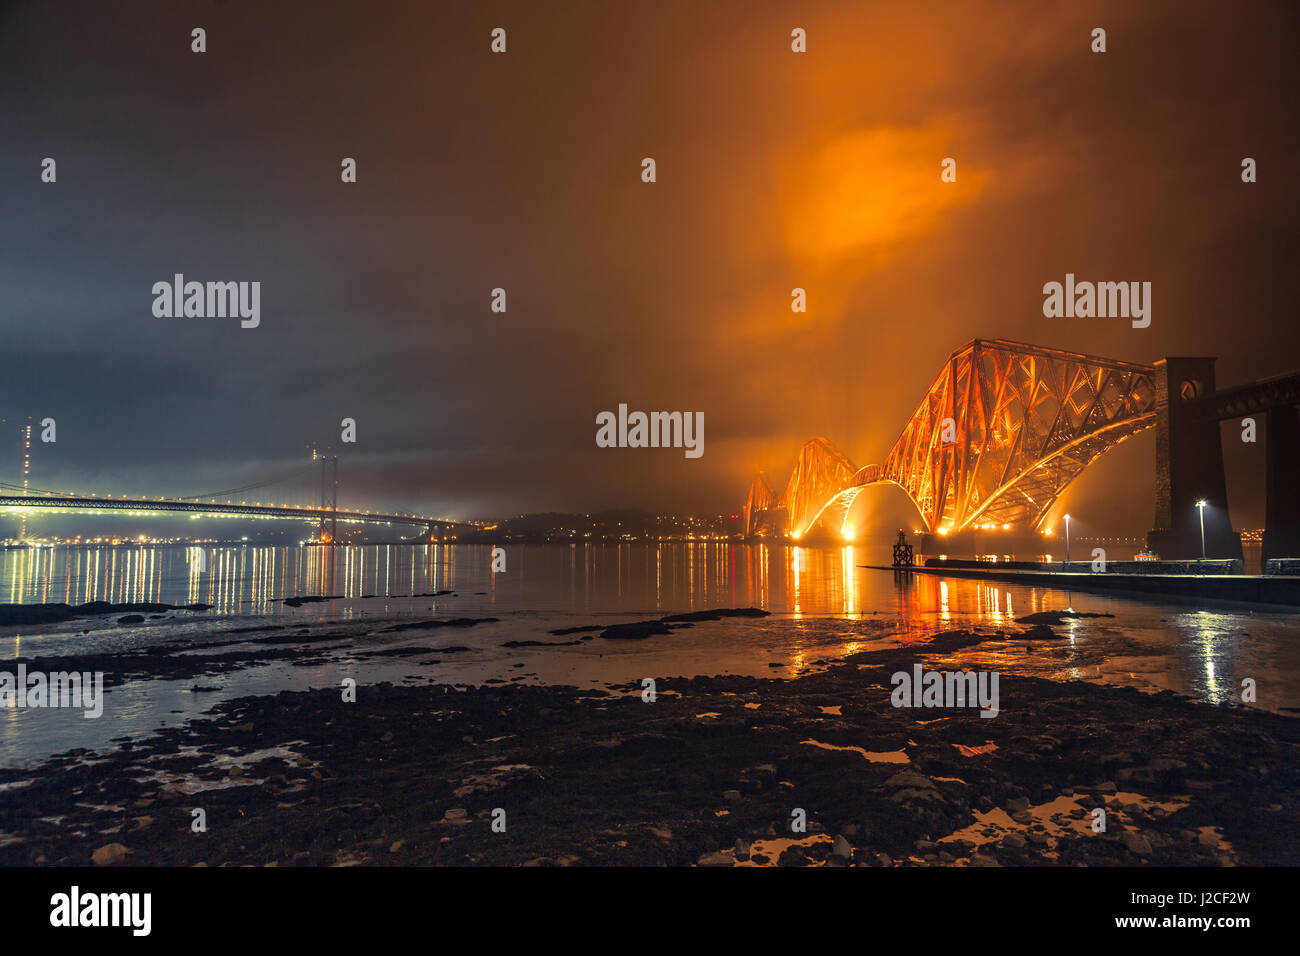 The Forth Rail Bridge lit up at night. Golden light hits the clouds above. South Queensferry, Edinburgh, Scotland - Stock Image